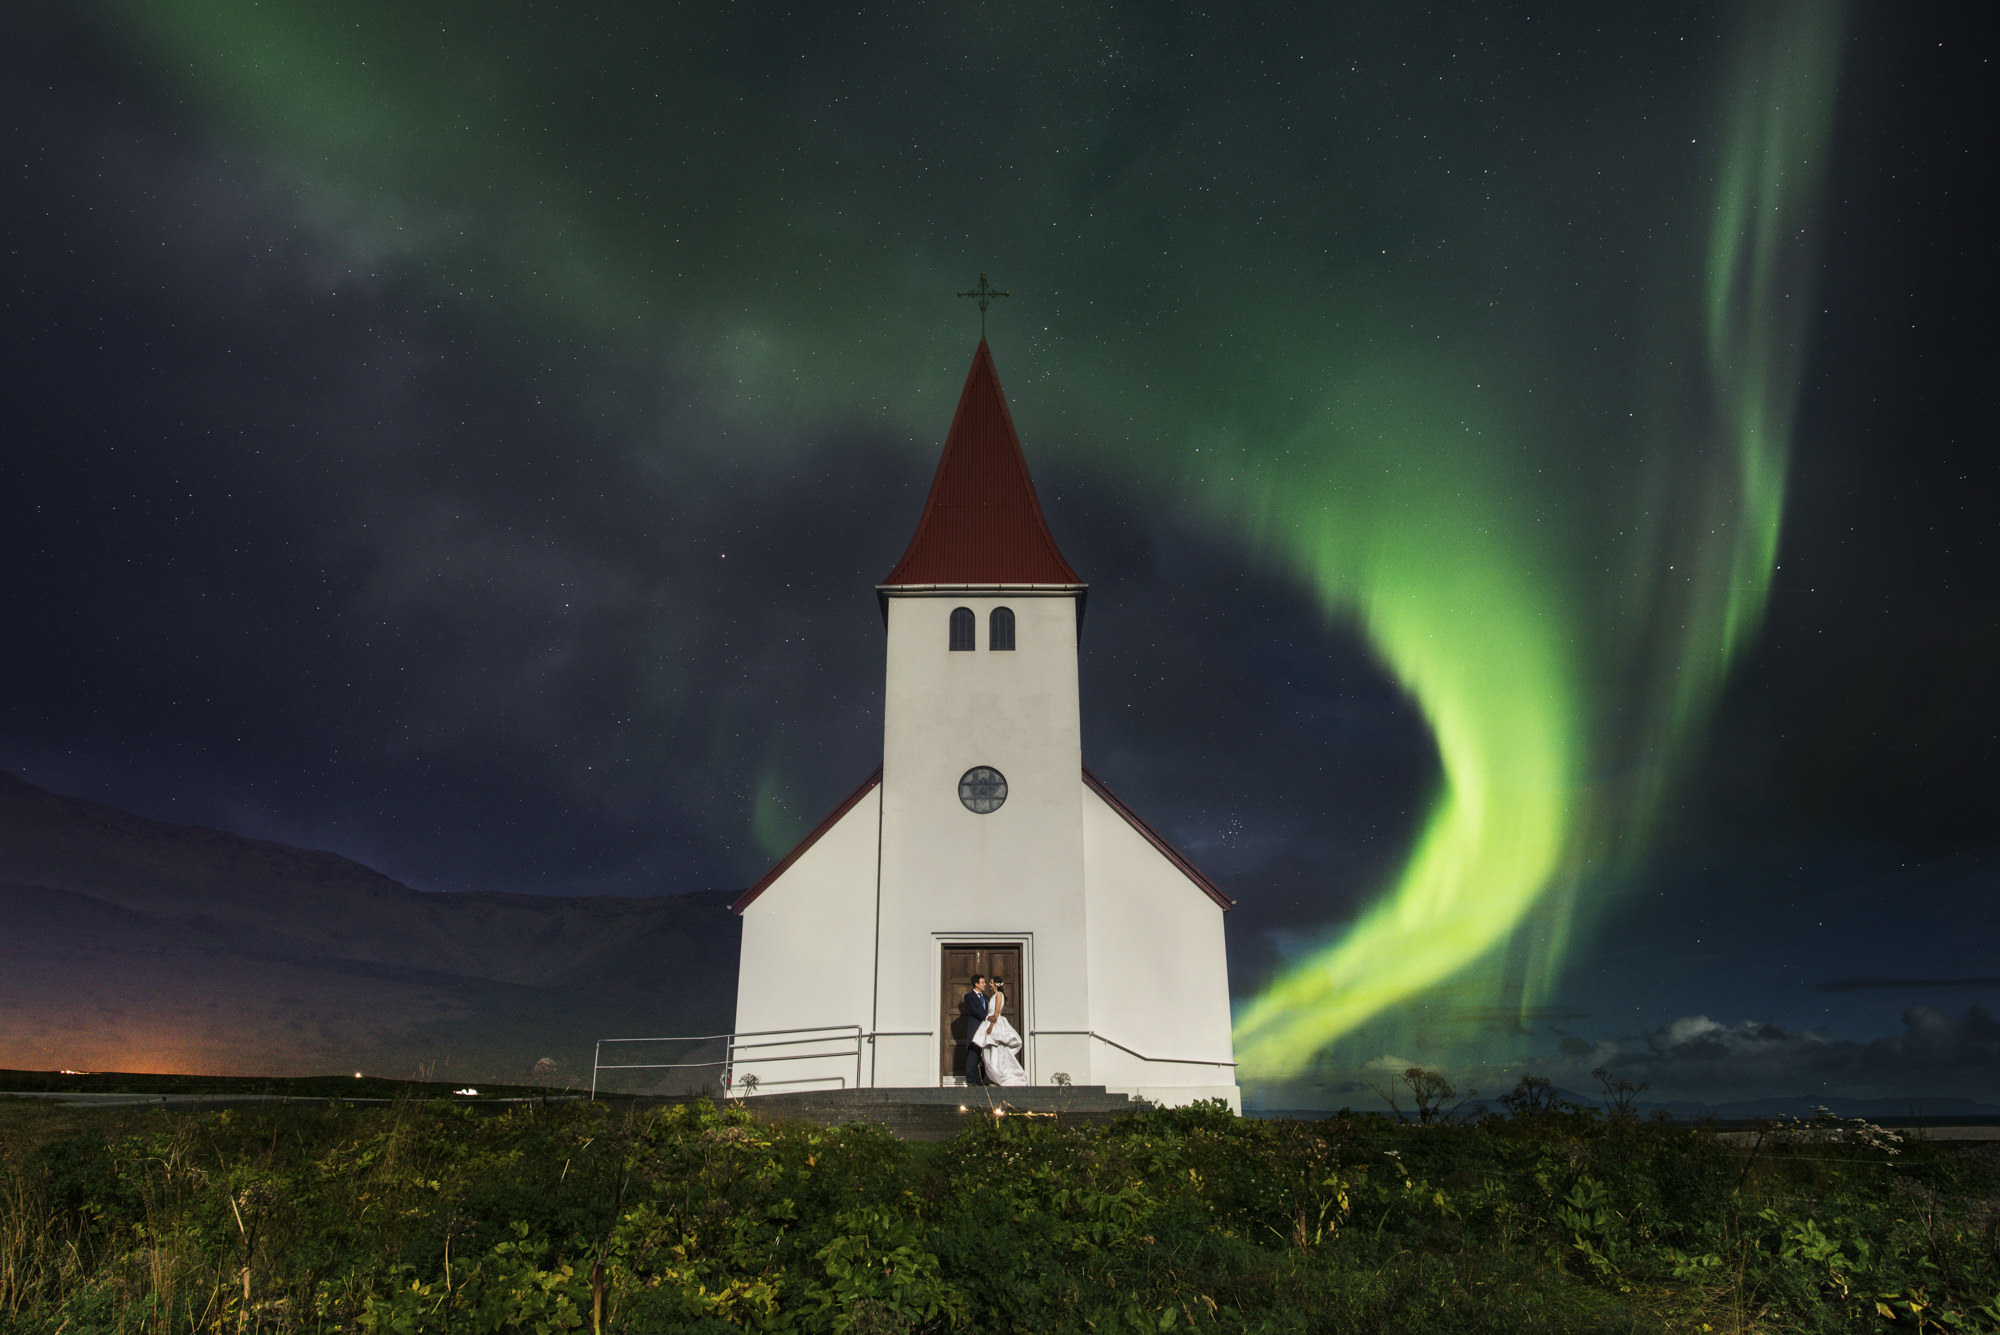 Couple at chapel with northern lights - photo by Look Fotographica